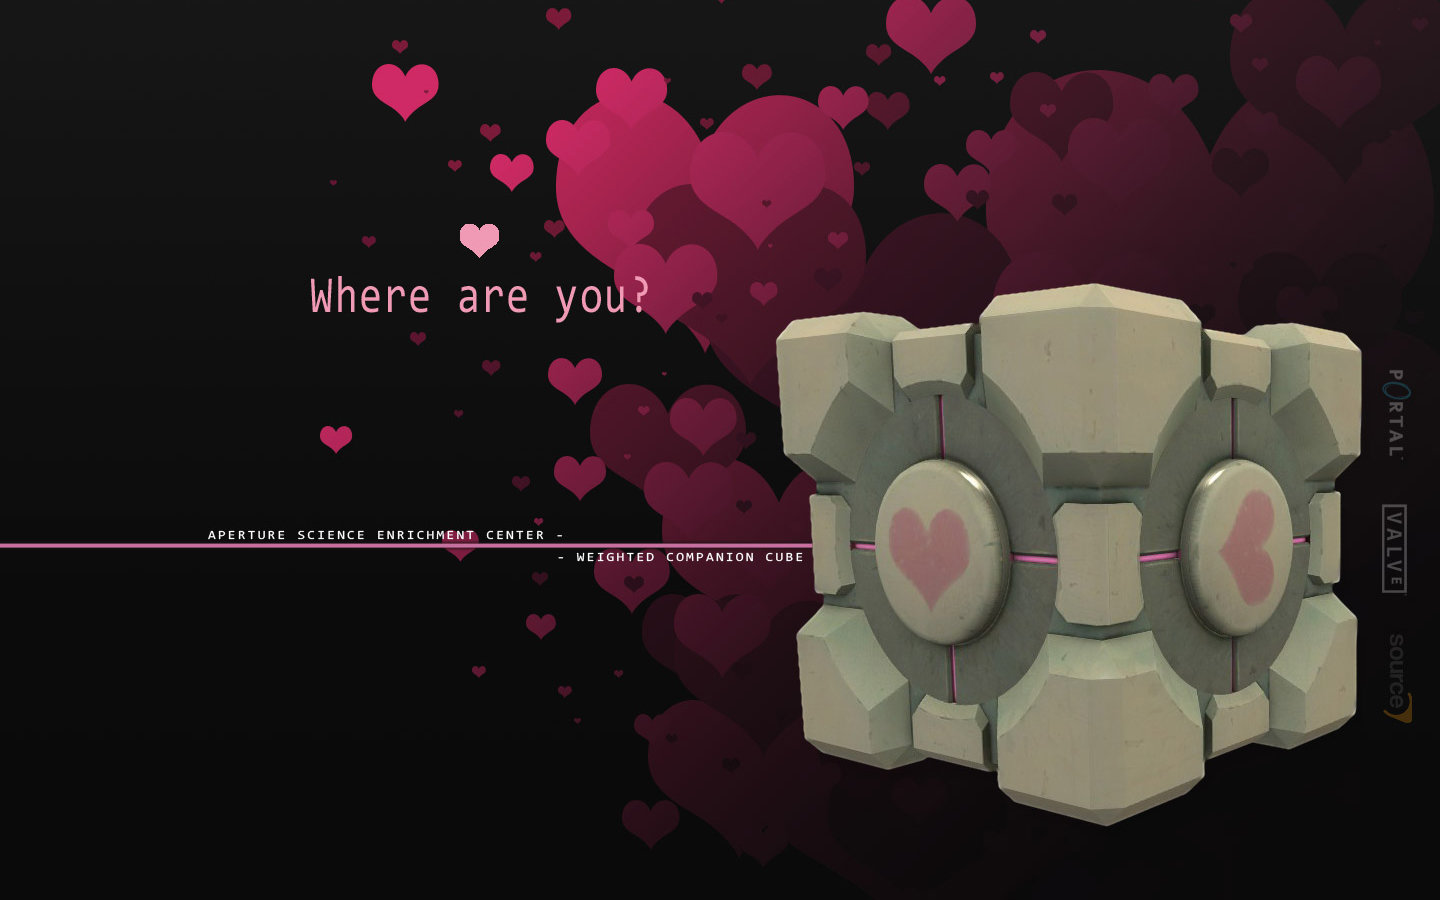 High resolution Weighted Companion Cube hd 1440x900 wallpaper ID:274913 for computer